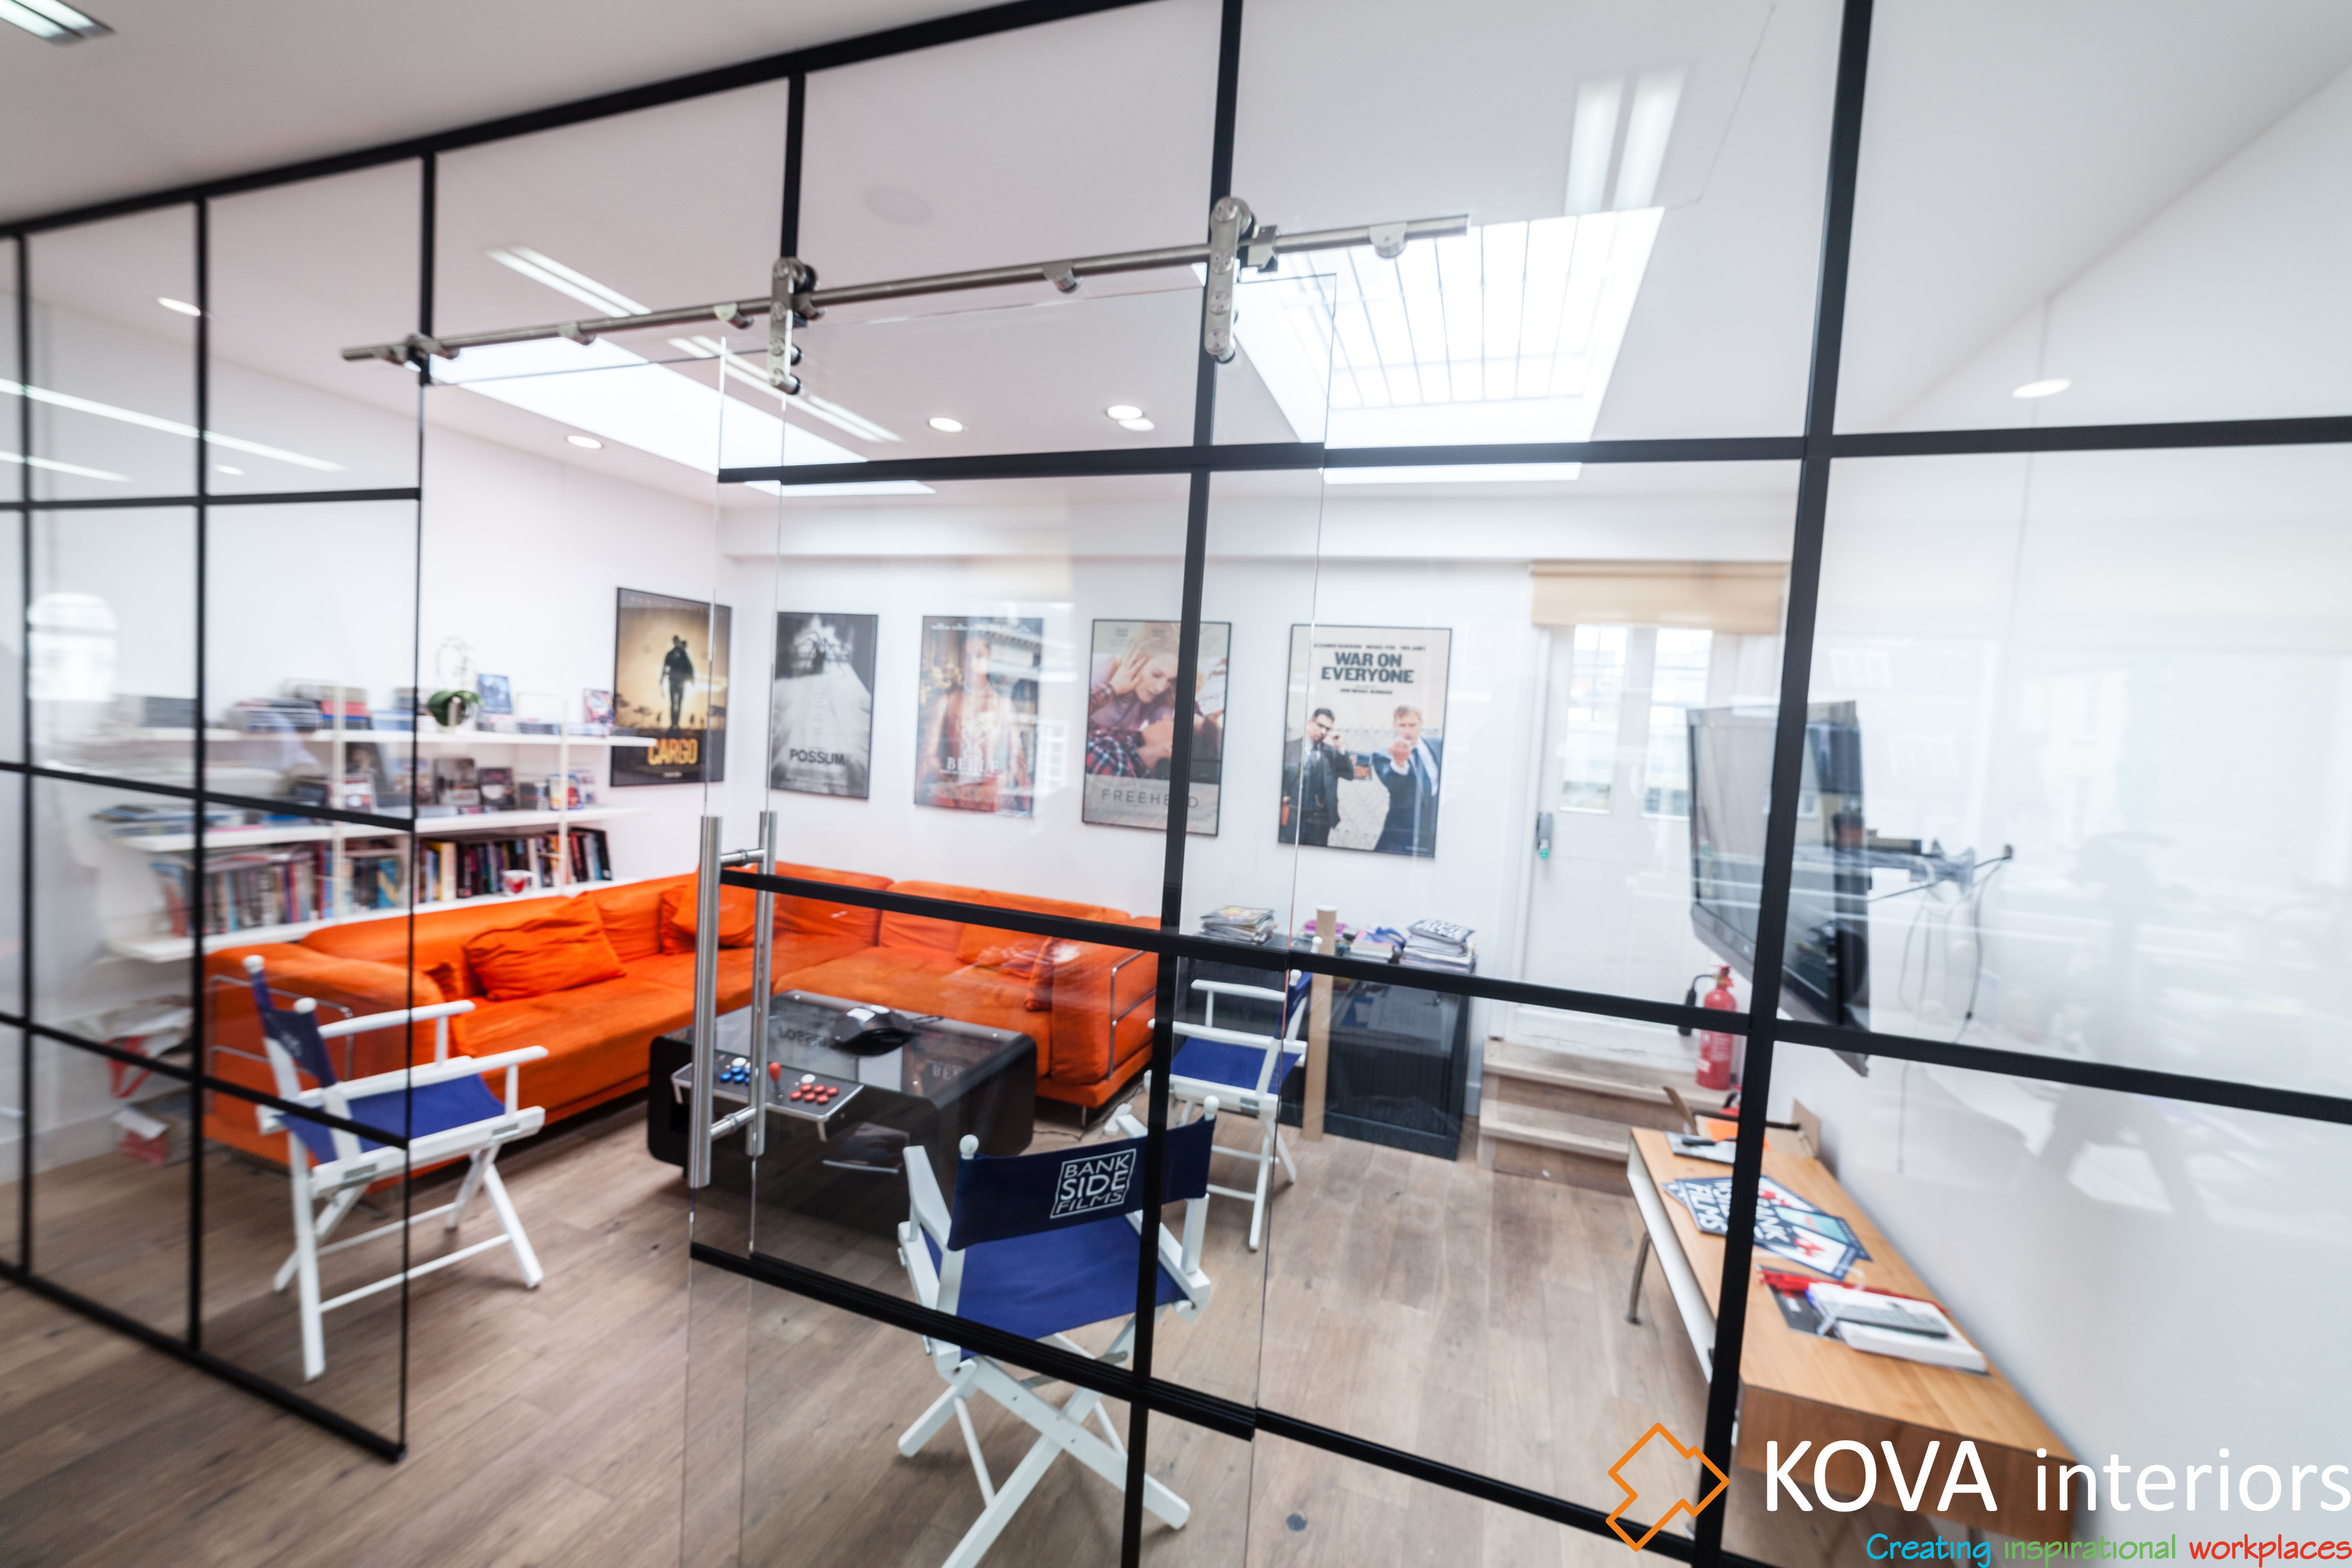 Get Your Office Revamped with Our Innovative Office Design ...